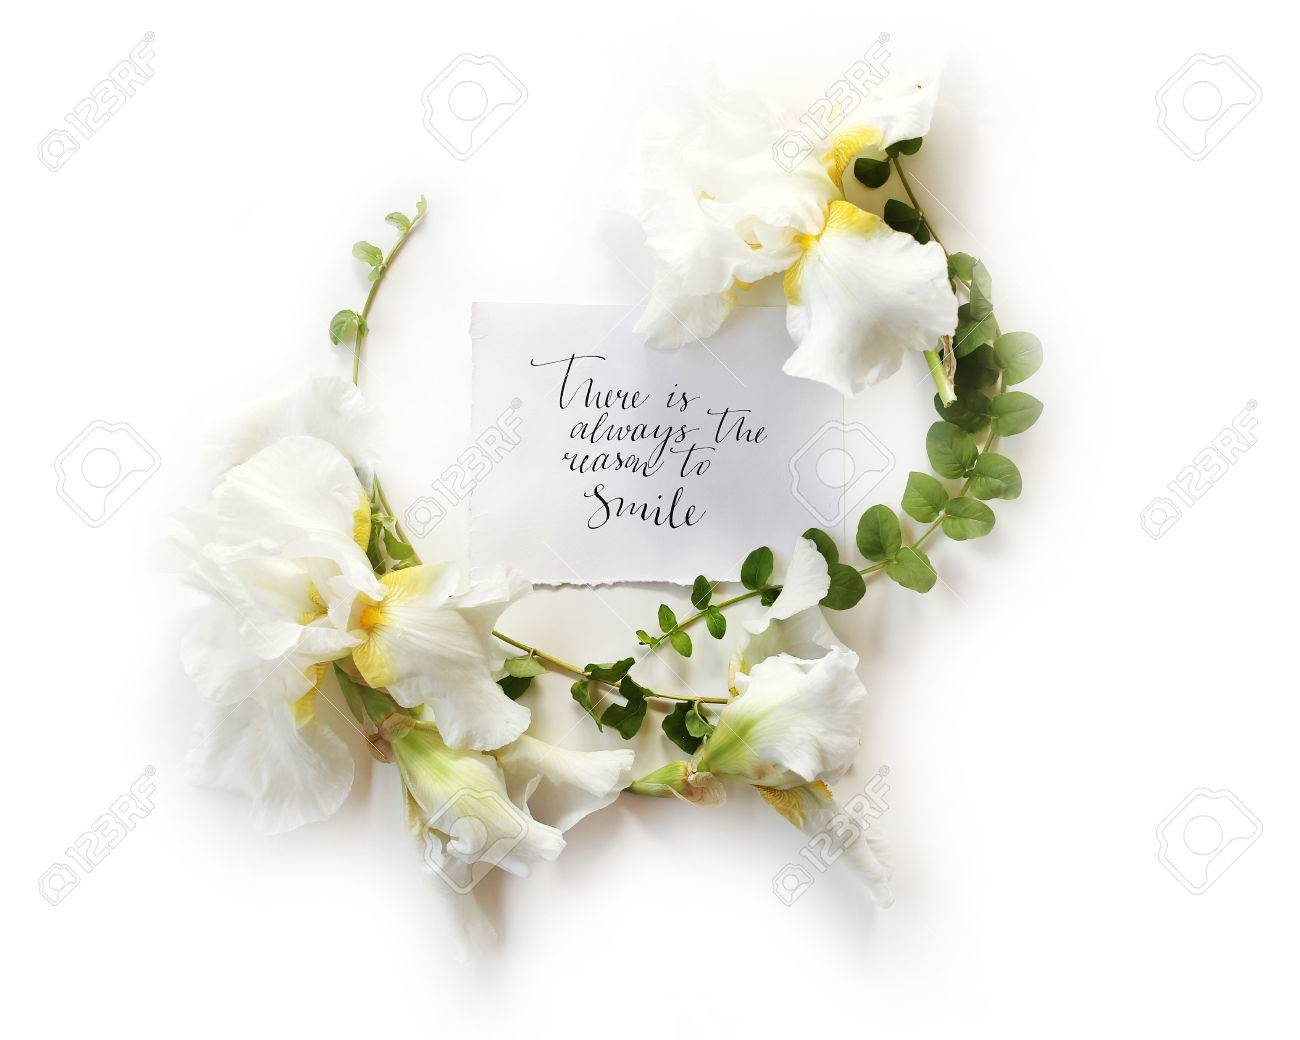 Floral Frame Wreath Made Of Fresh Iris White Flowers And Green